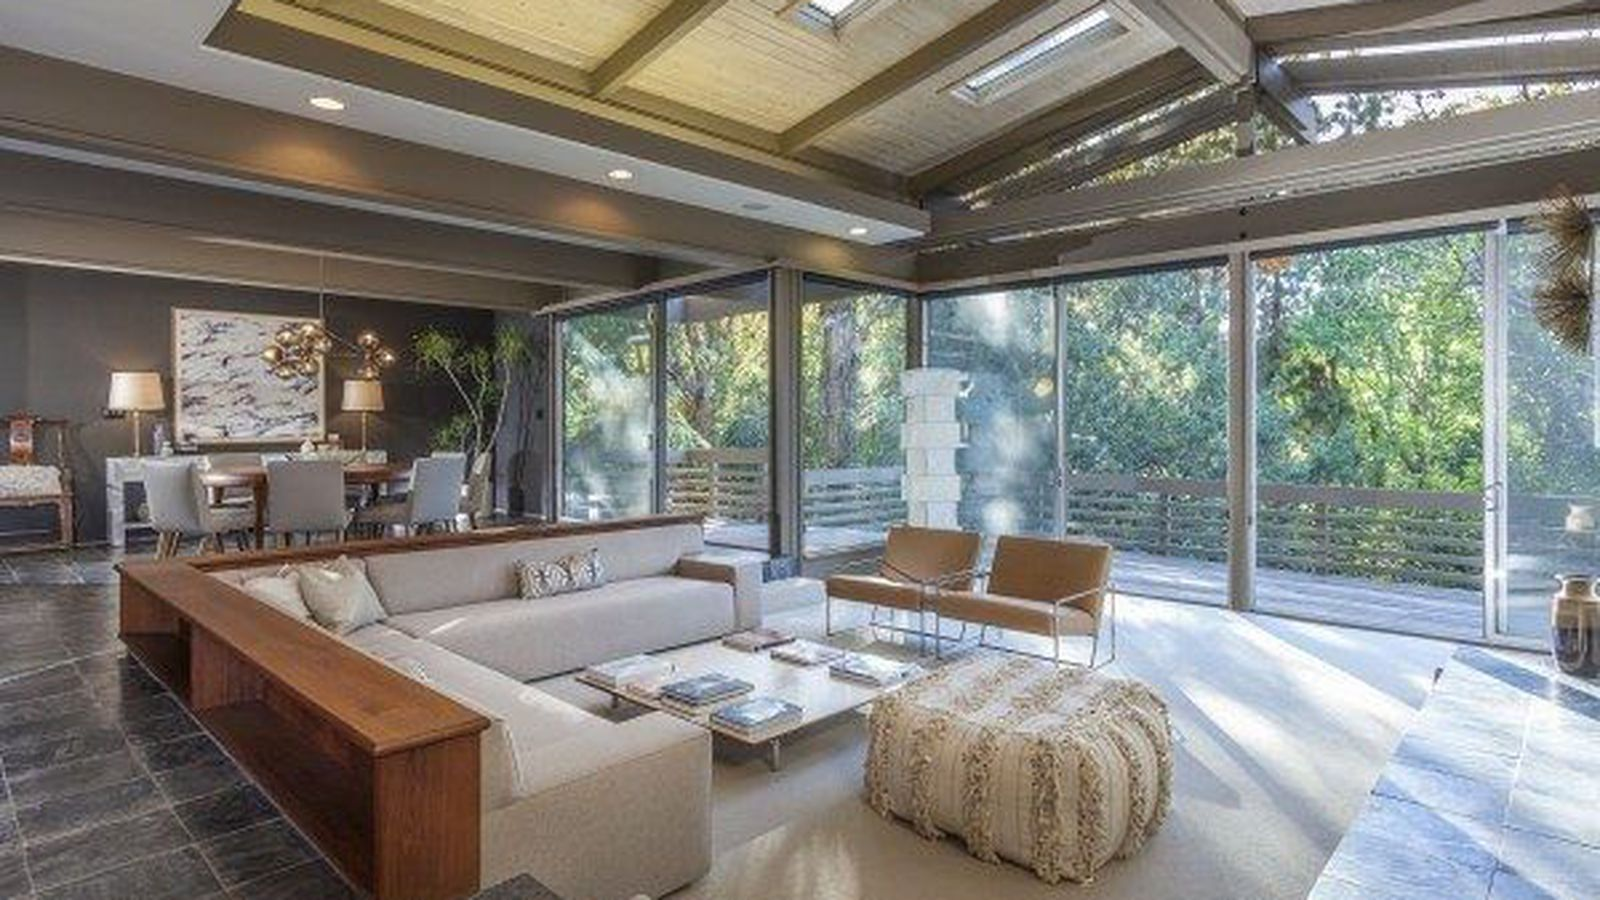 timeless ray kappe midcentury in encino asks 3 2m curbed la. Black Bedroom Furniture Sets. Home Design Ideas